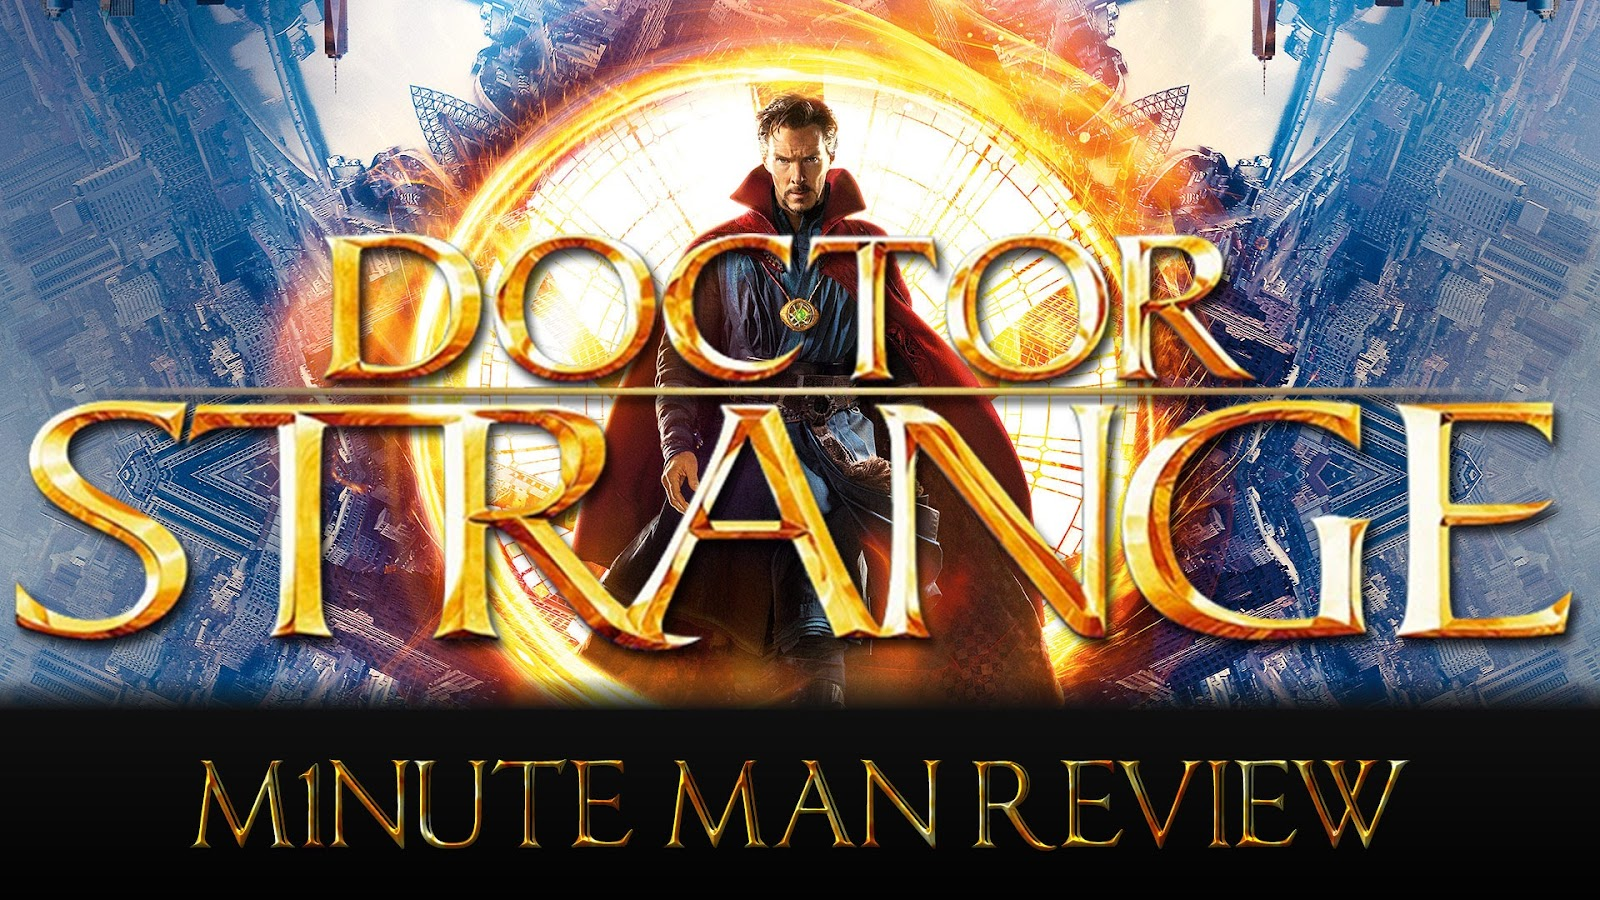 movie review Doctor Strange podcast